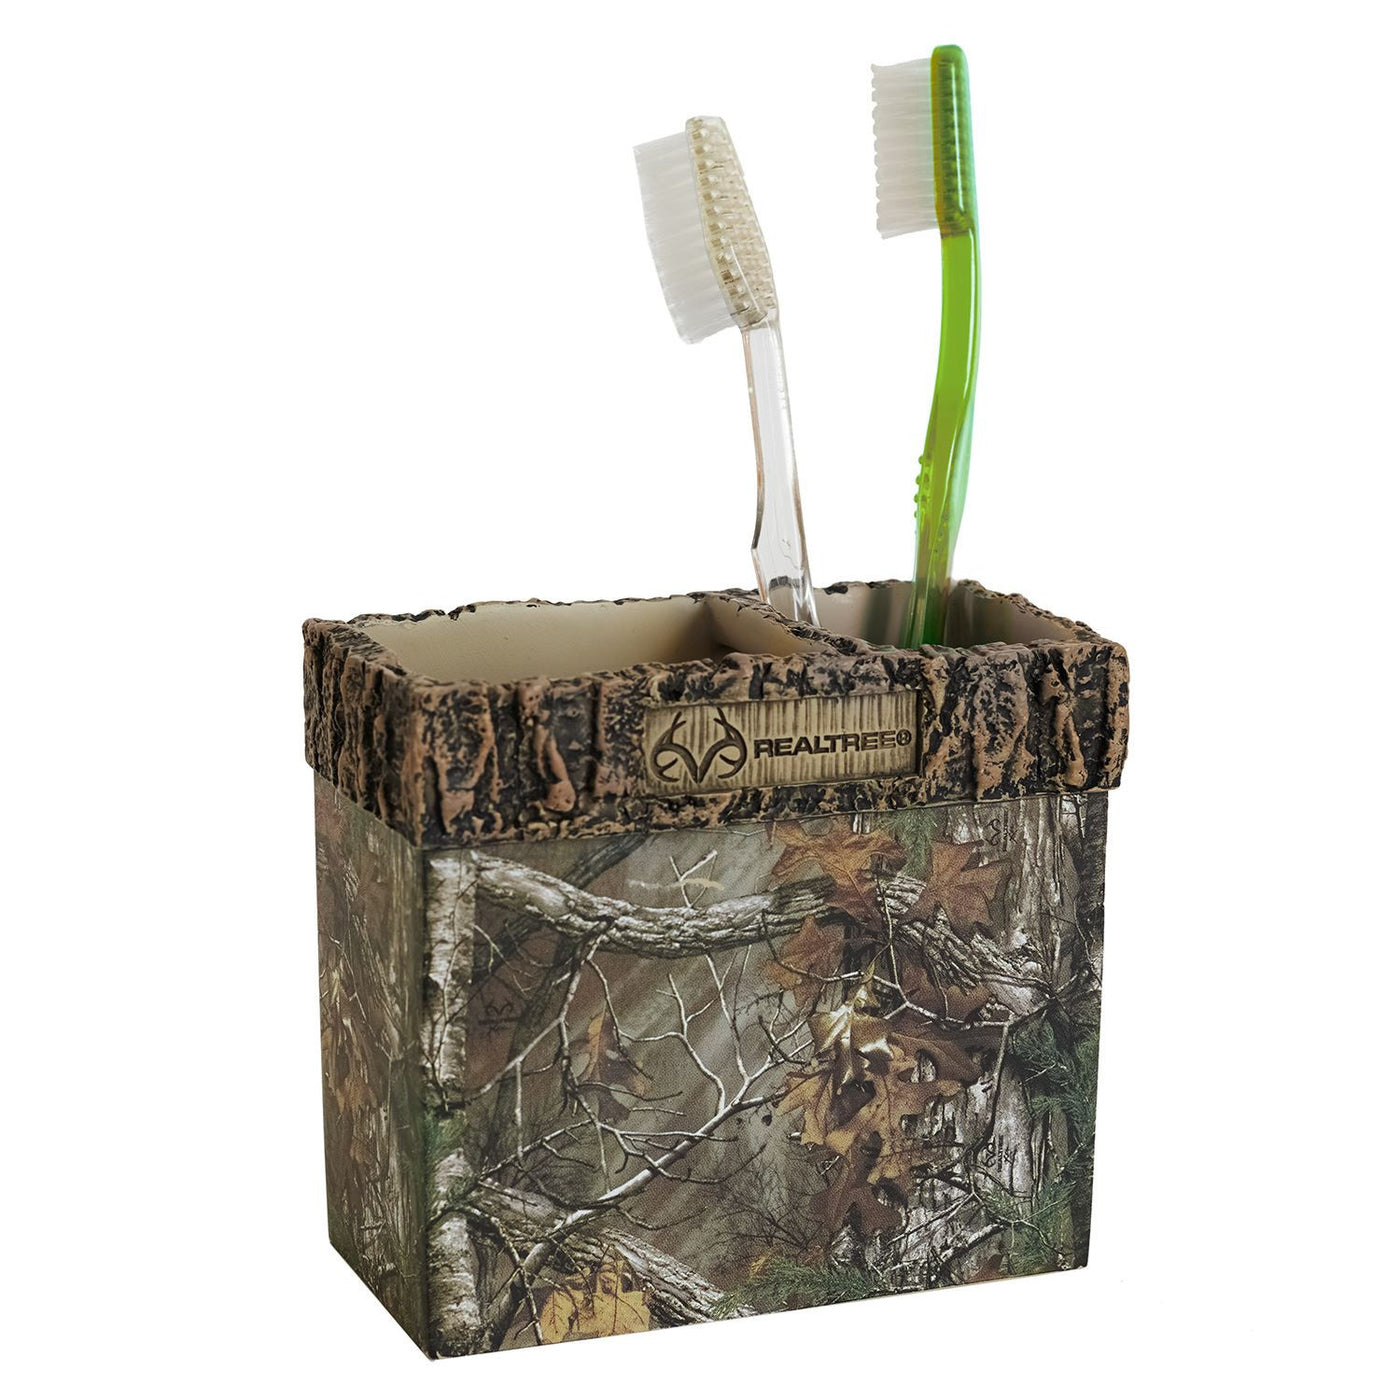 Cabin Toothbrush Holder | Realtree Camo | The Cabin Shack